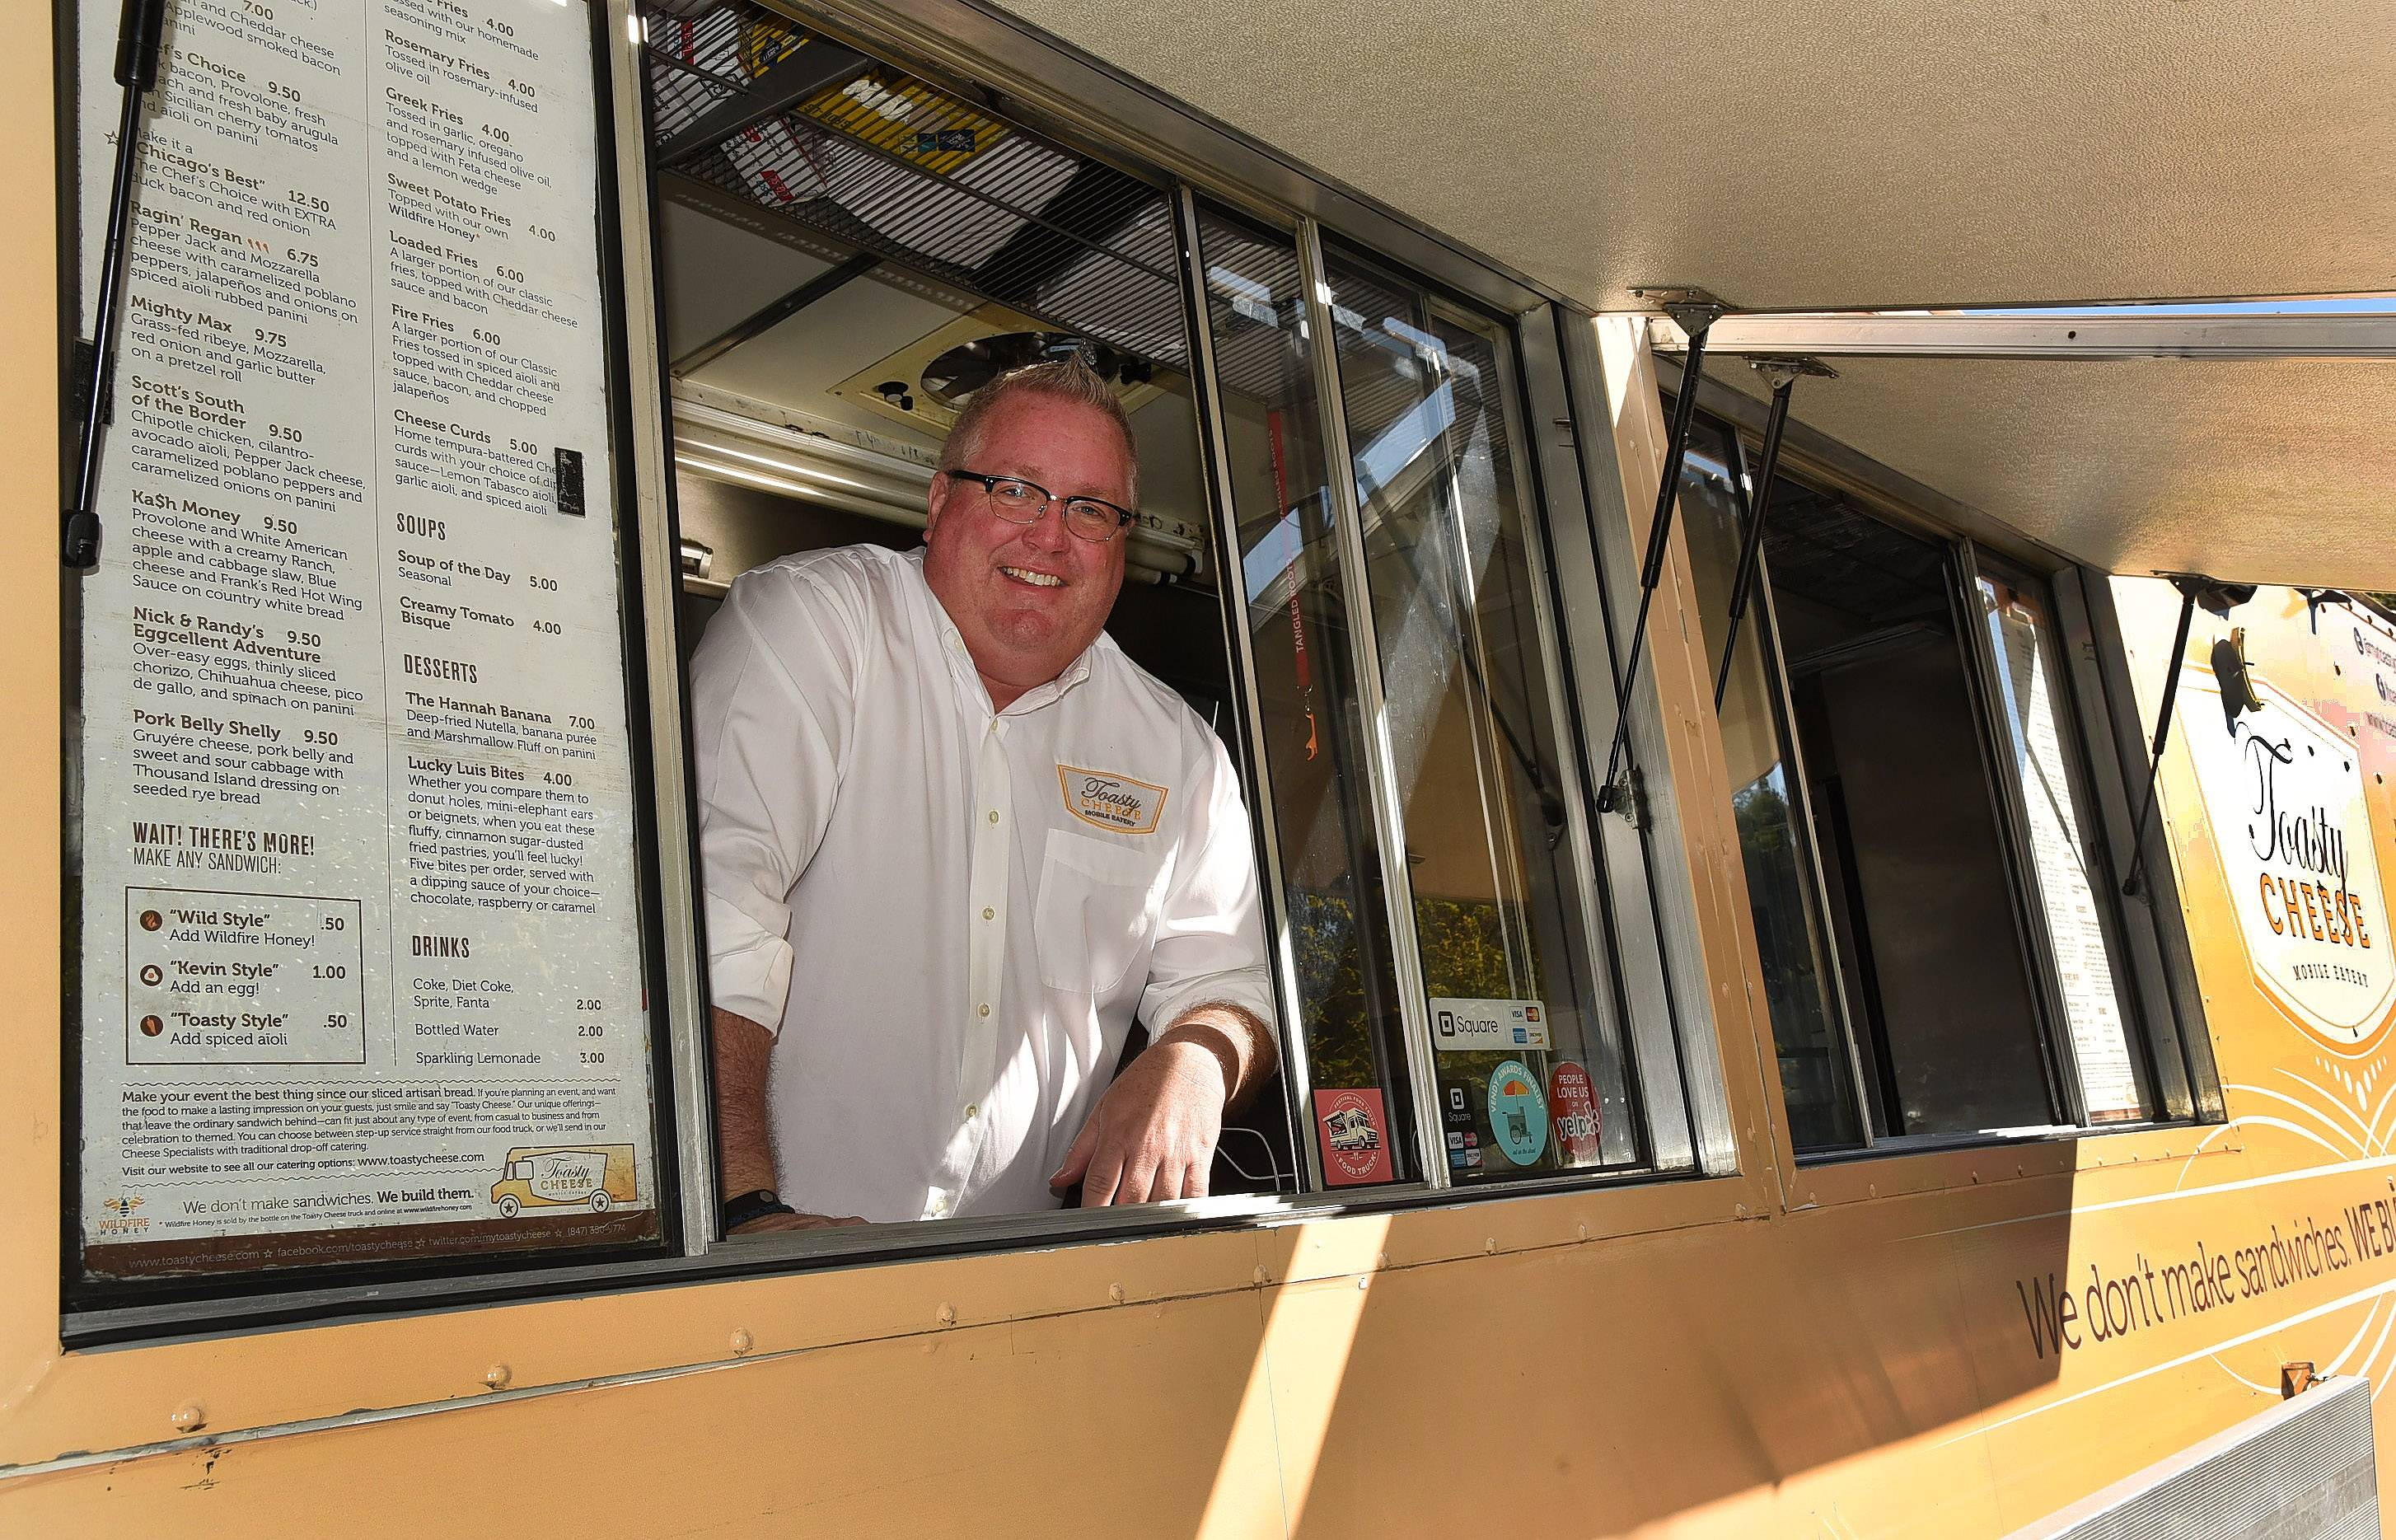 Greg Barnhart, owner of Toasty Cheese, is growing his food truck business based in Schaumburg. A variety of upscale products fill his cheese sandwiches, including duck bacon, cilantro-avacado aioli and Sicilian cherry tomatoes and apple/cabbage slaw.